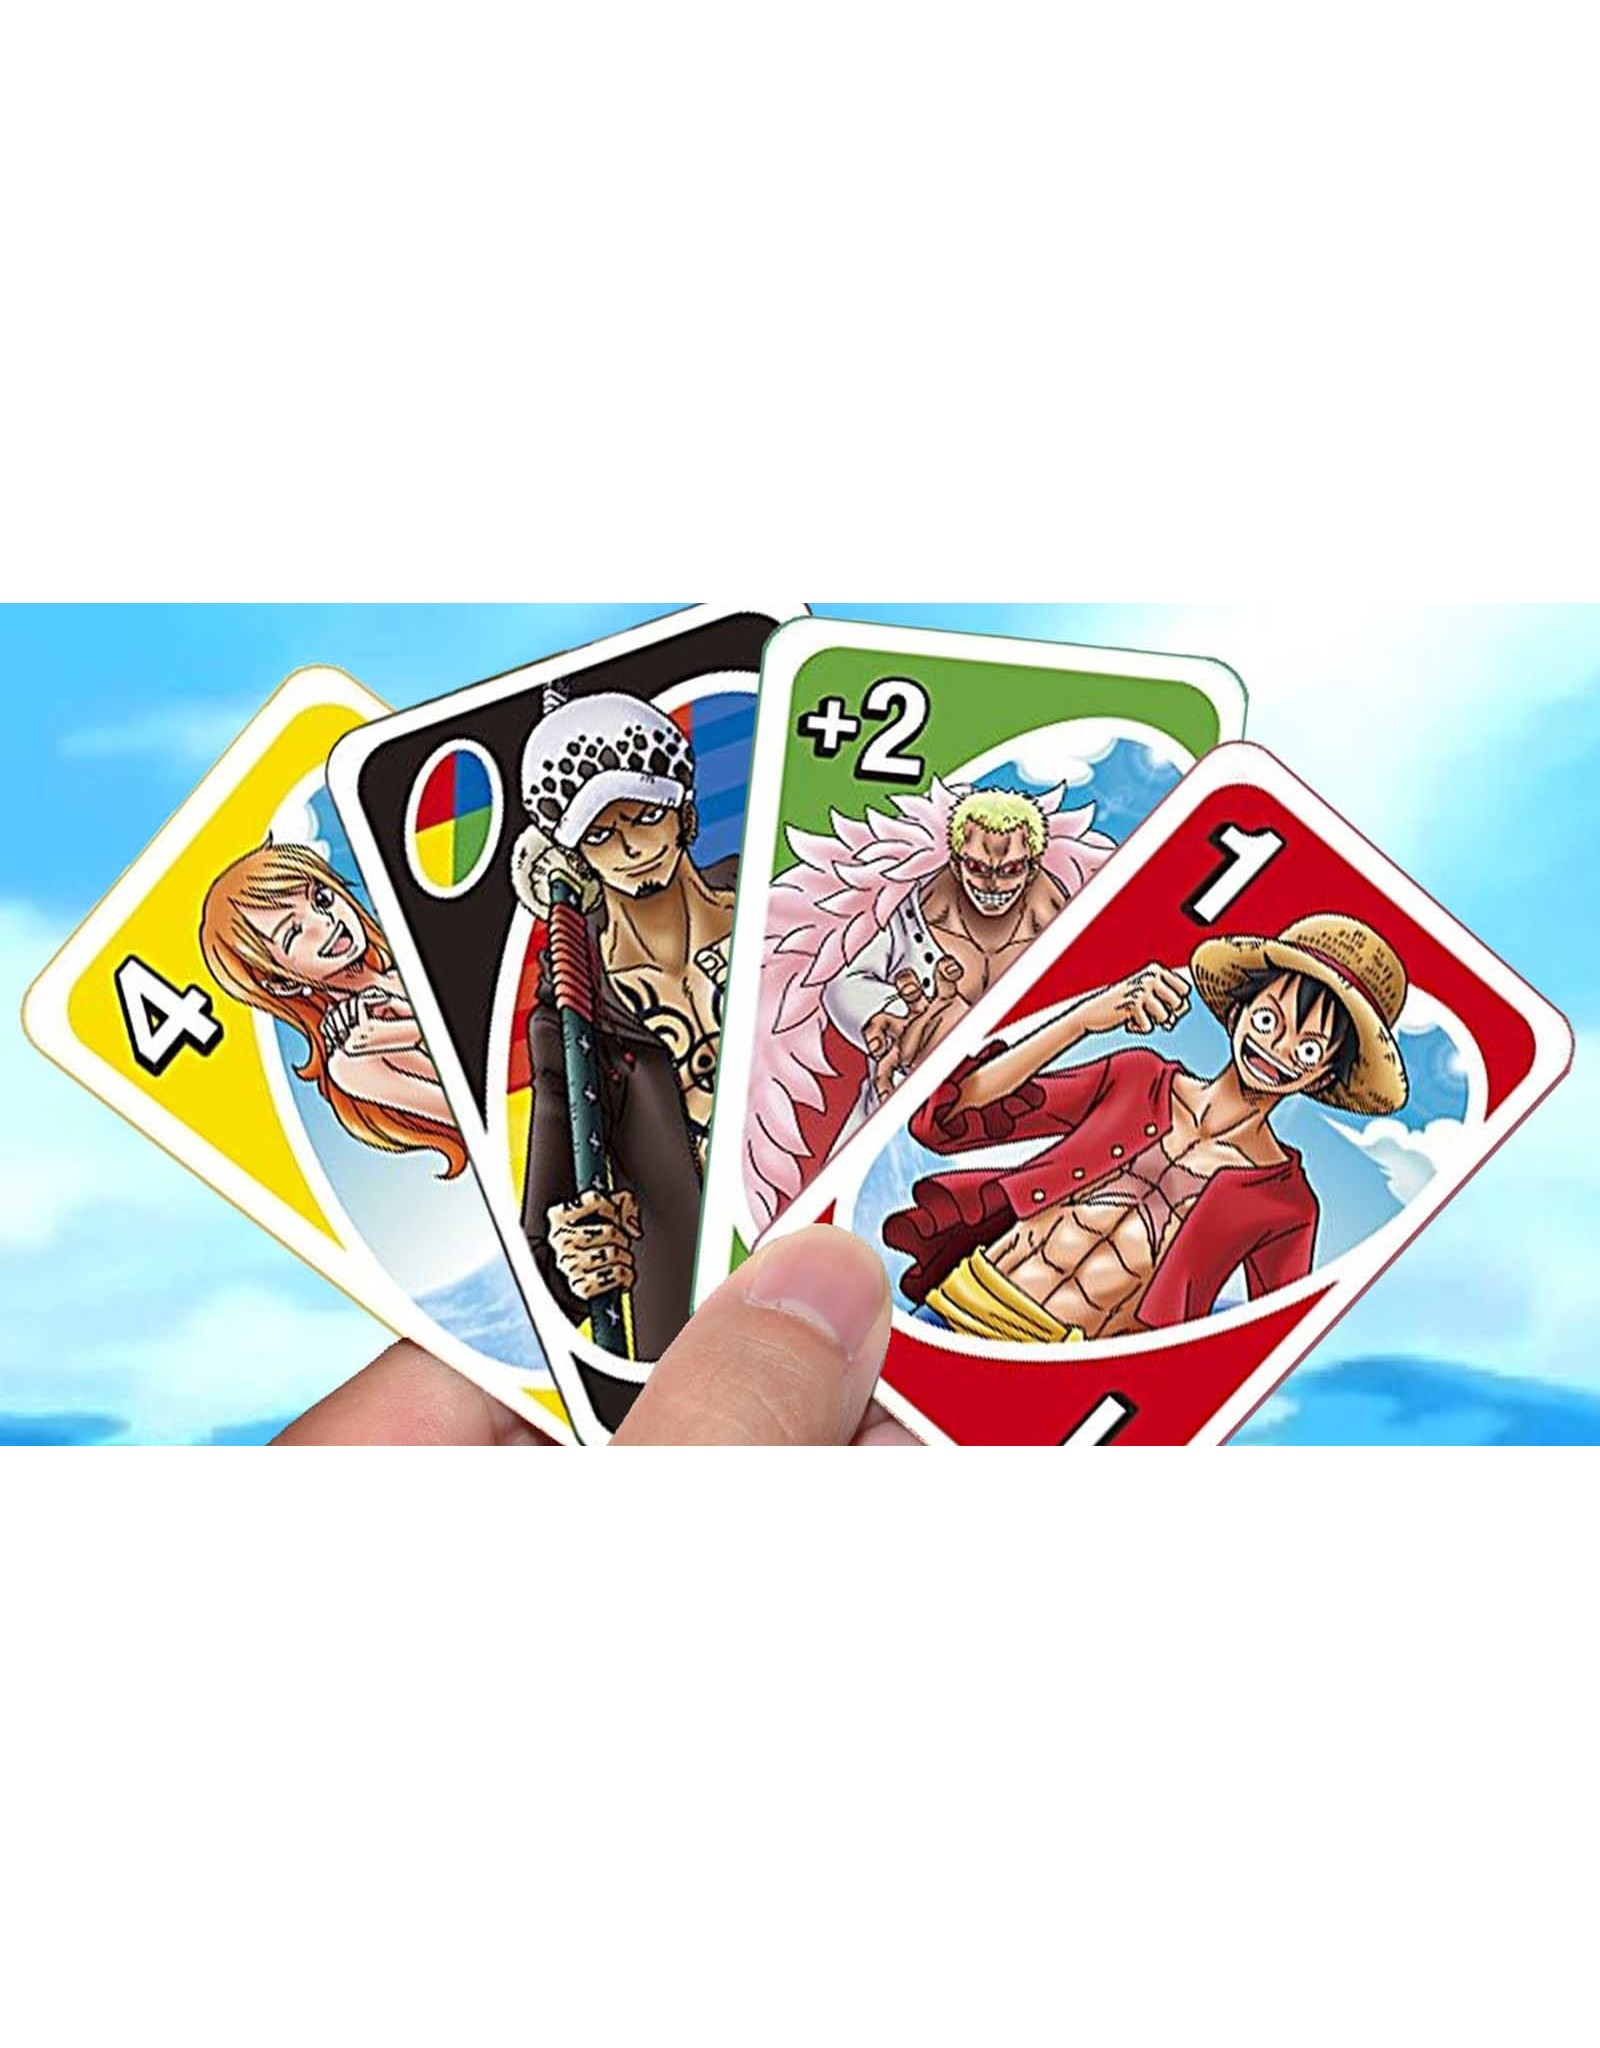 UNO - One Piece - Japanese import